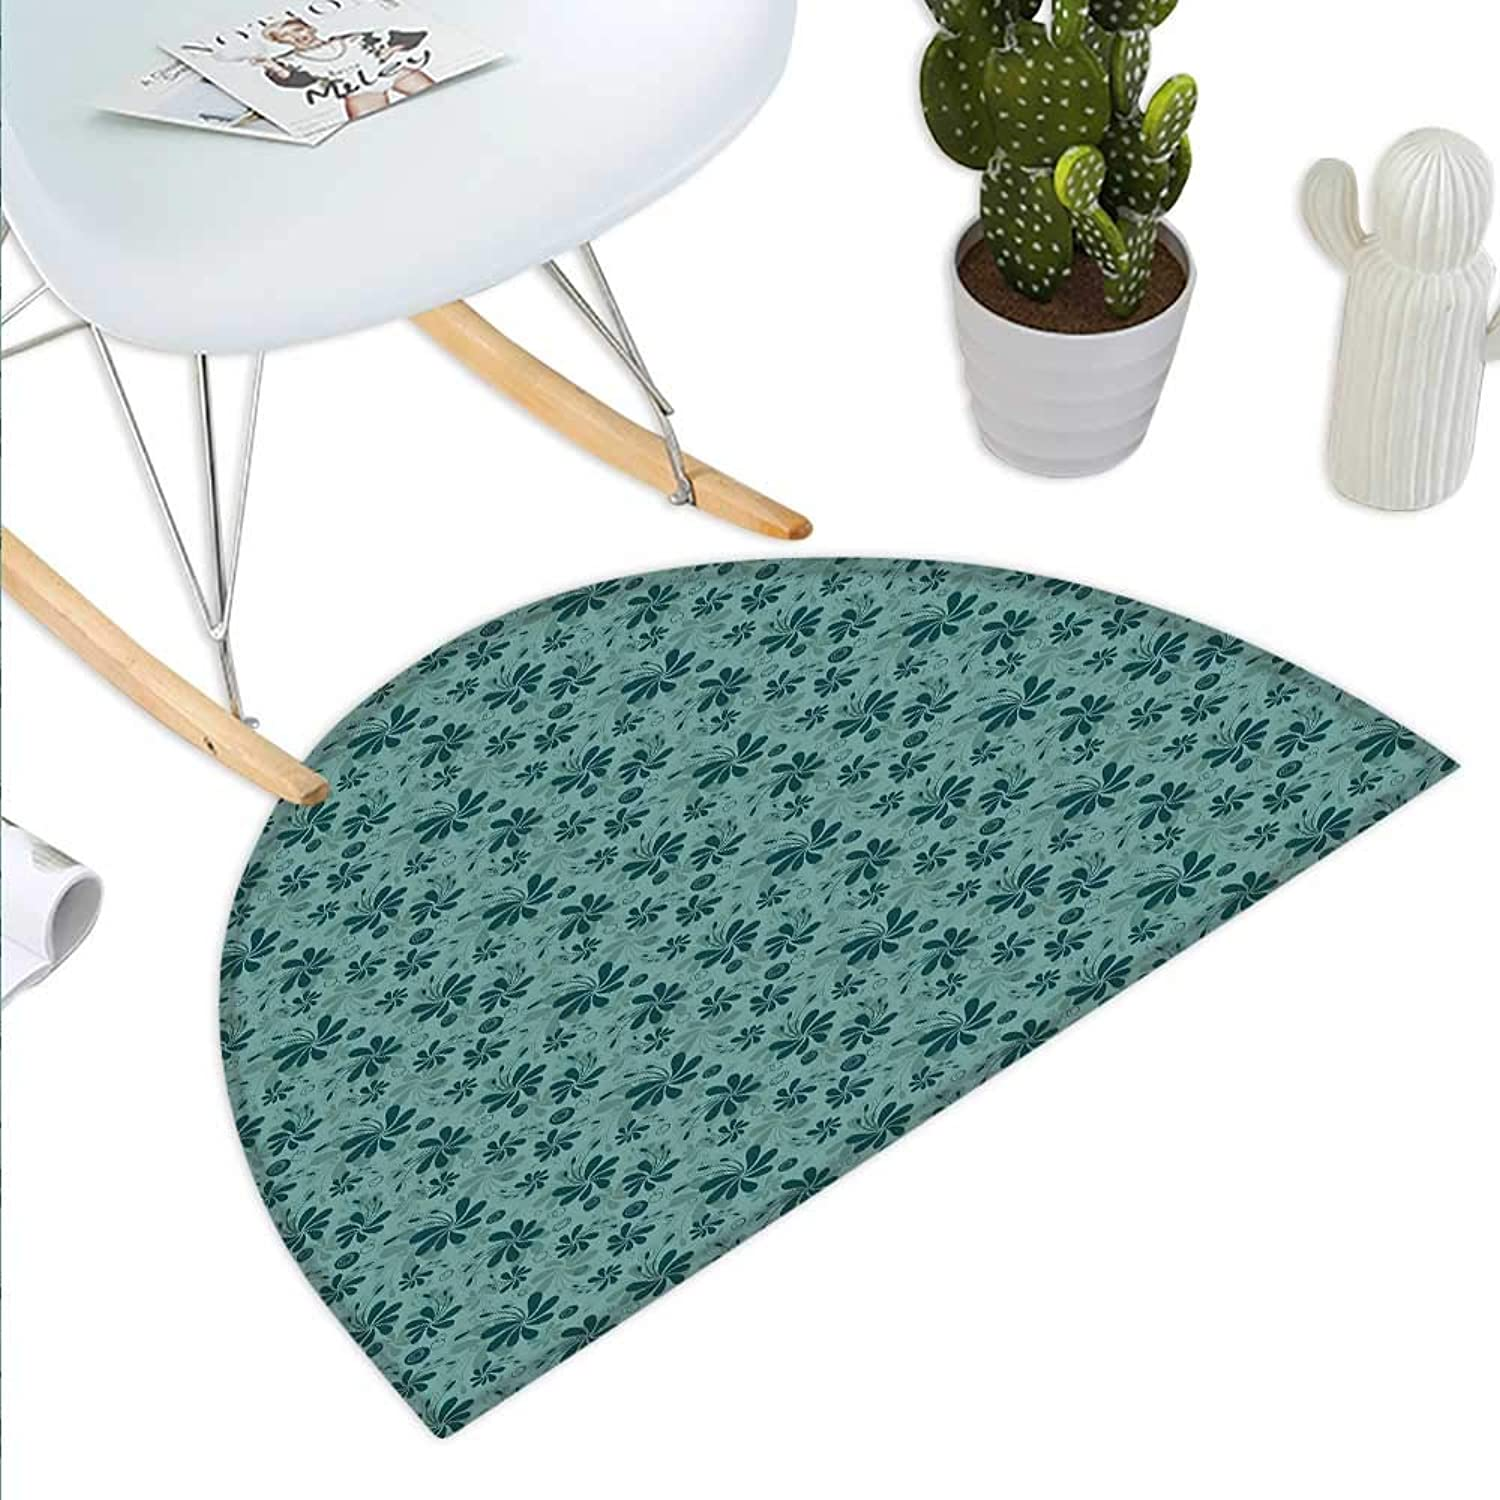 Turquoise Semicircle Doormat Abstract Foliage Leaves Pattern Gentle Floral Arrangement Romantic Design Halfmoon doormats H 51.1  xD 76.7  Turquoise Teal